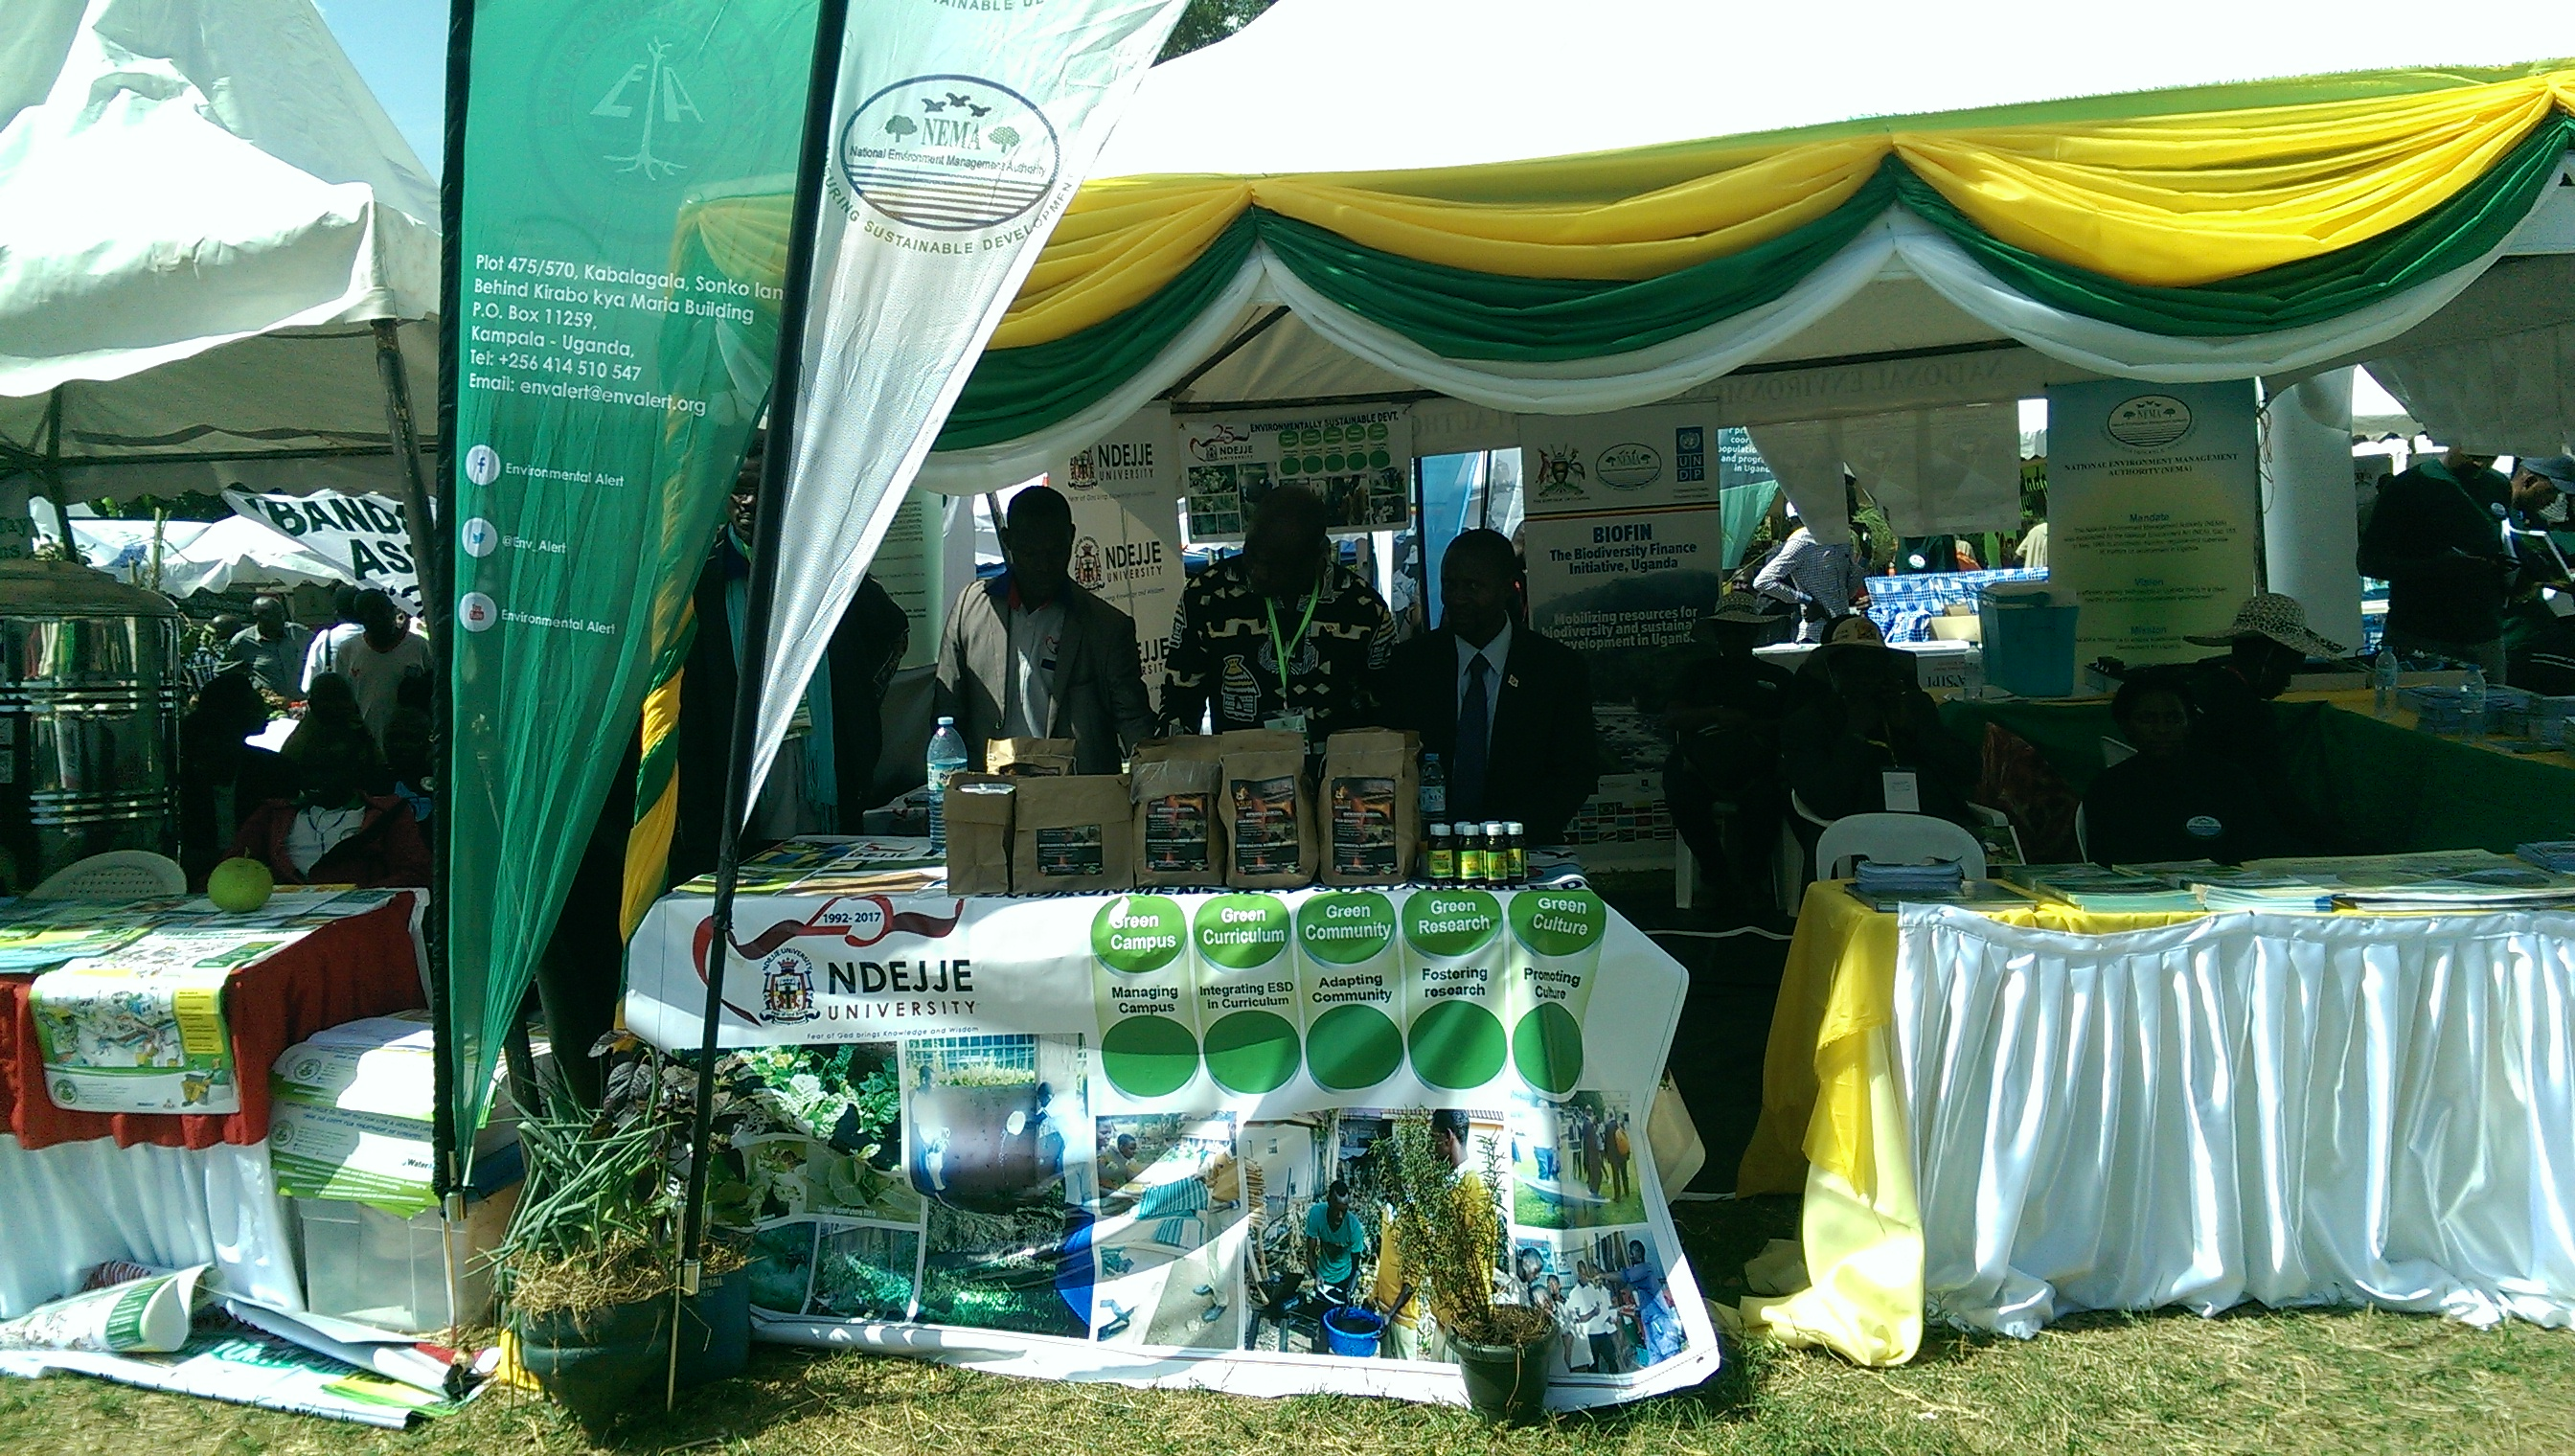 Exhibiting_Environmentally_Sustainable_Devt_Projects_at__2017_World_Environment_Day_Celebrations__in_Ibanda[1]